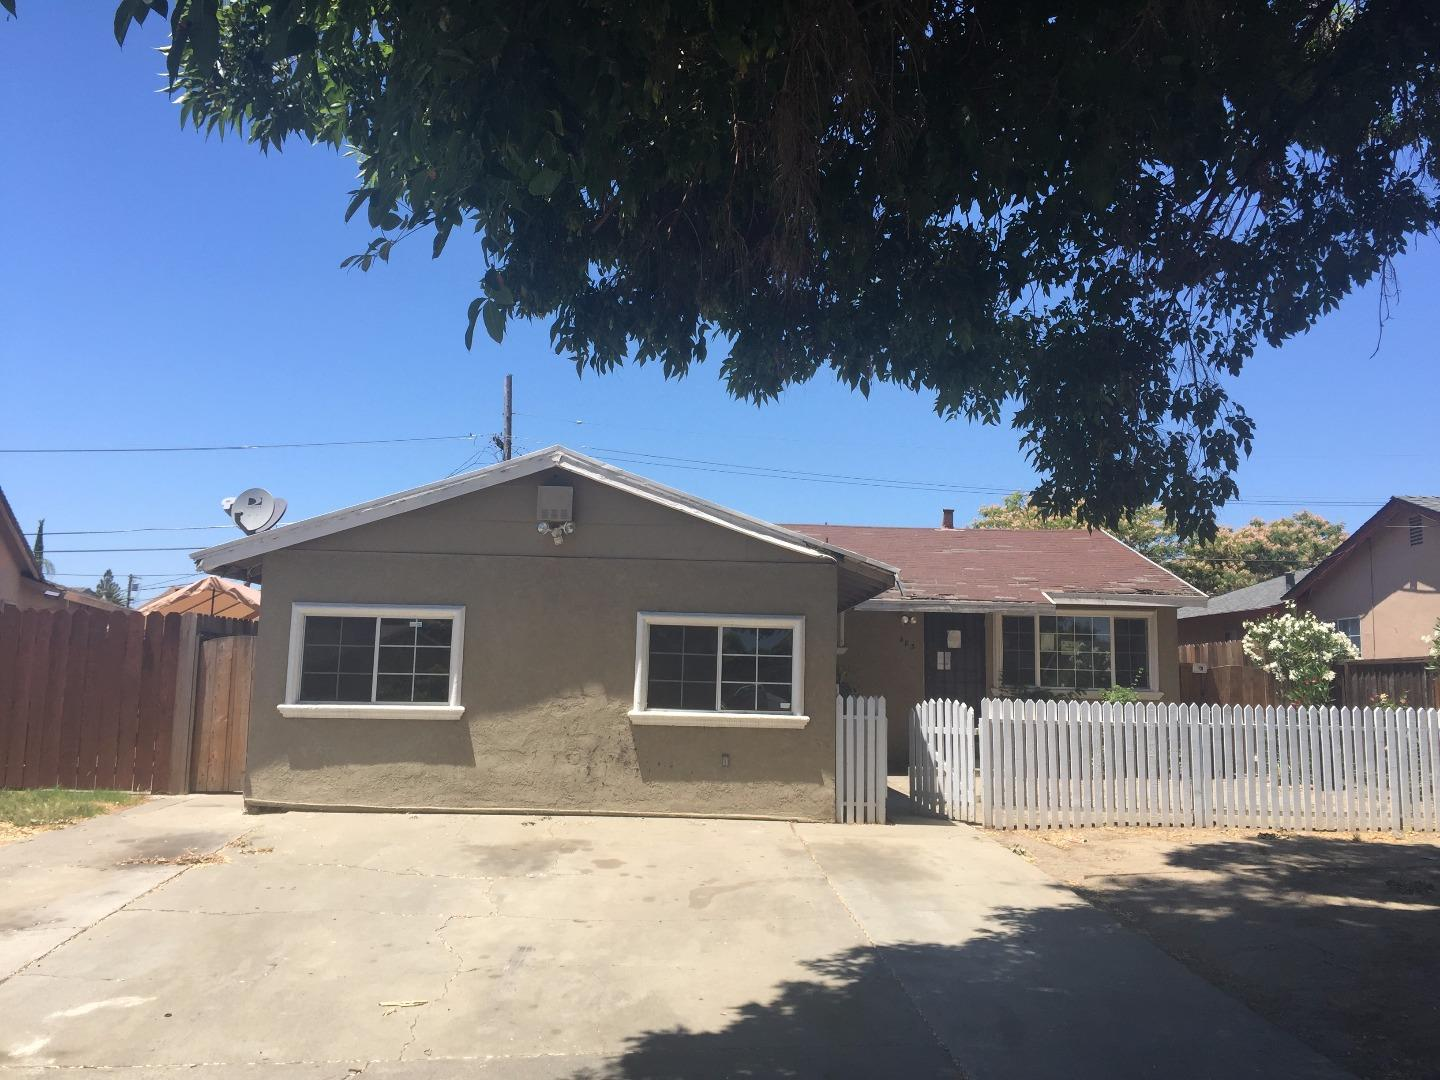 Additional photo for property listing at 483 Sebasian Way  San Jose, カリフォルニア 95111 アメリカ合衆国